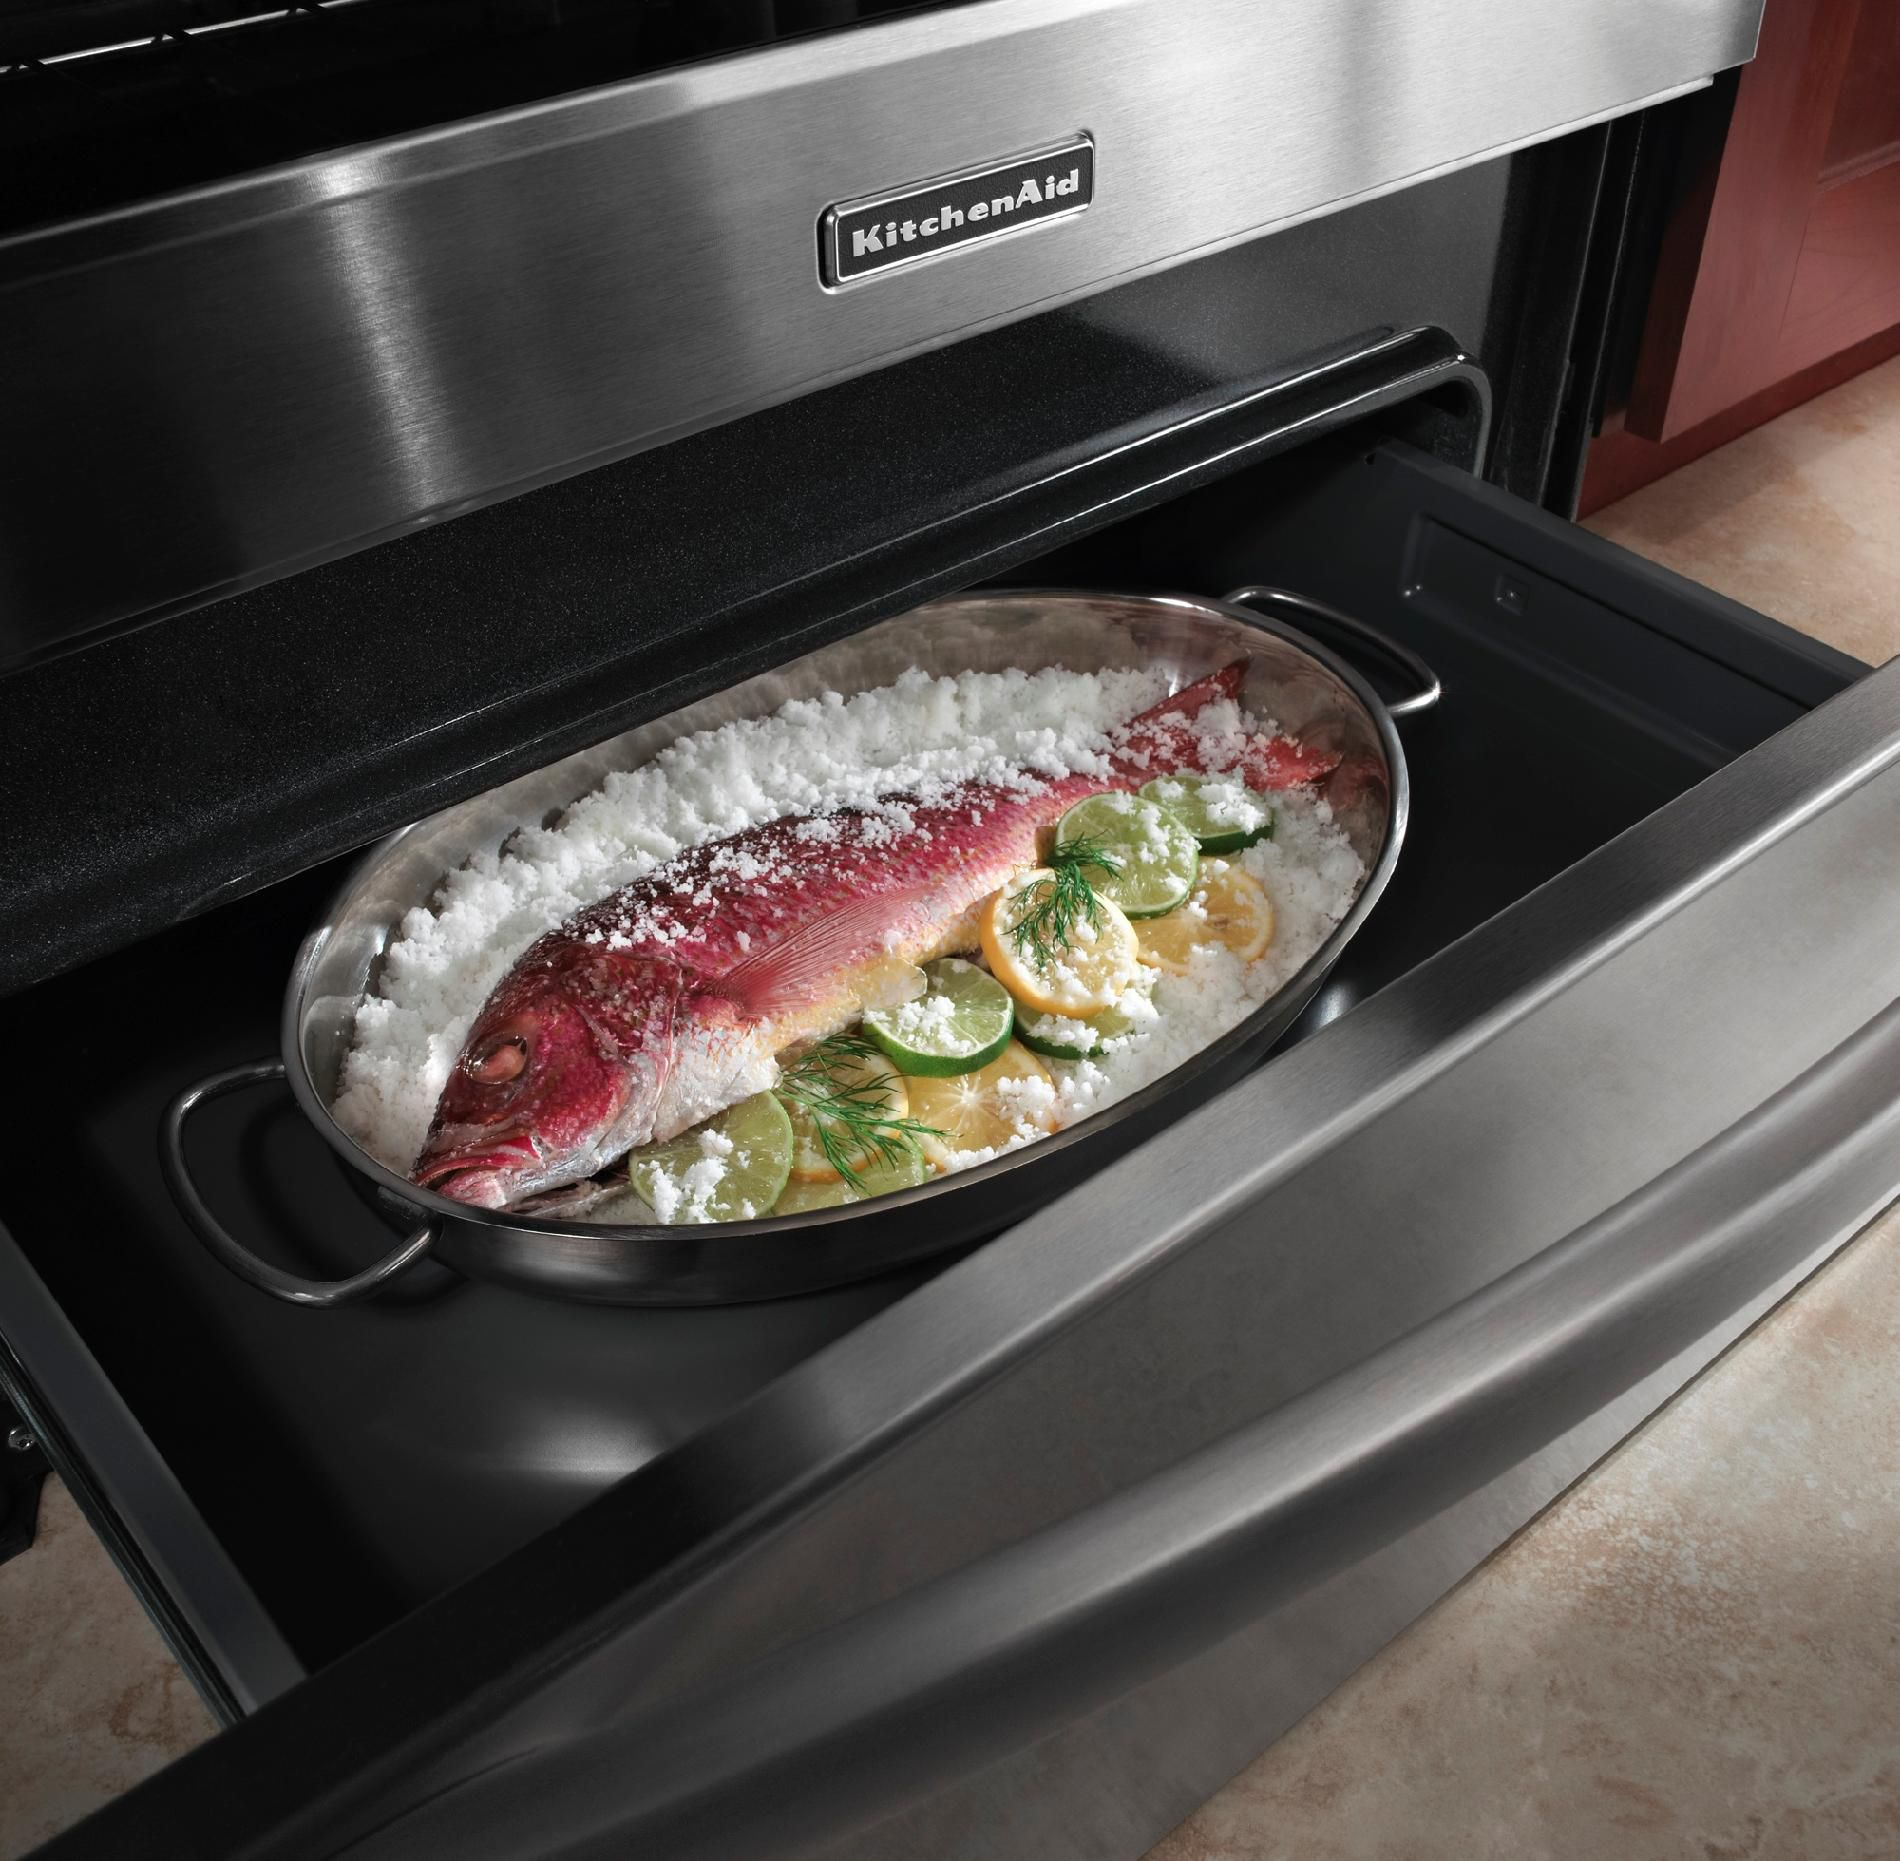 KitchenAid 6.2 cu. ft. Induction Range w/ Even-Heat™ Technology, Stainless Steel